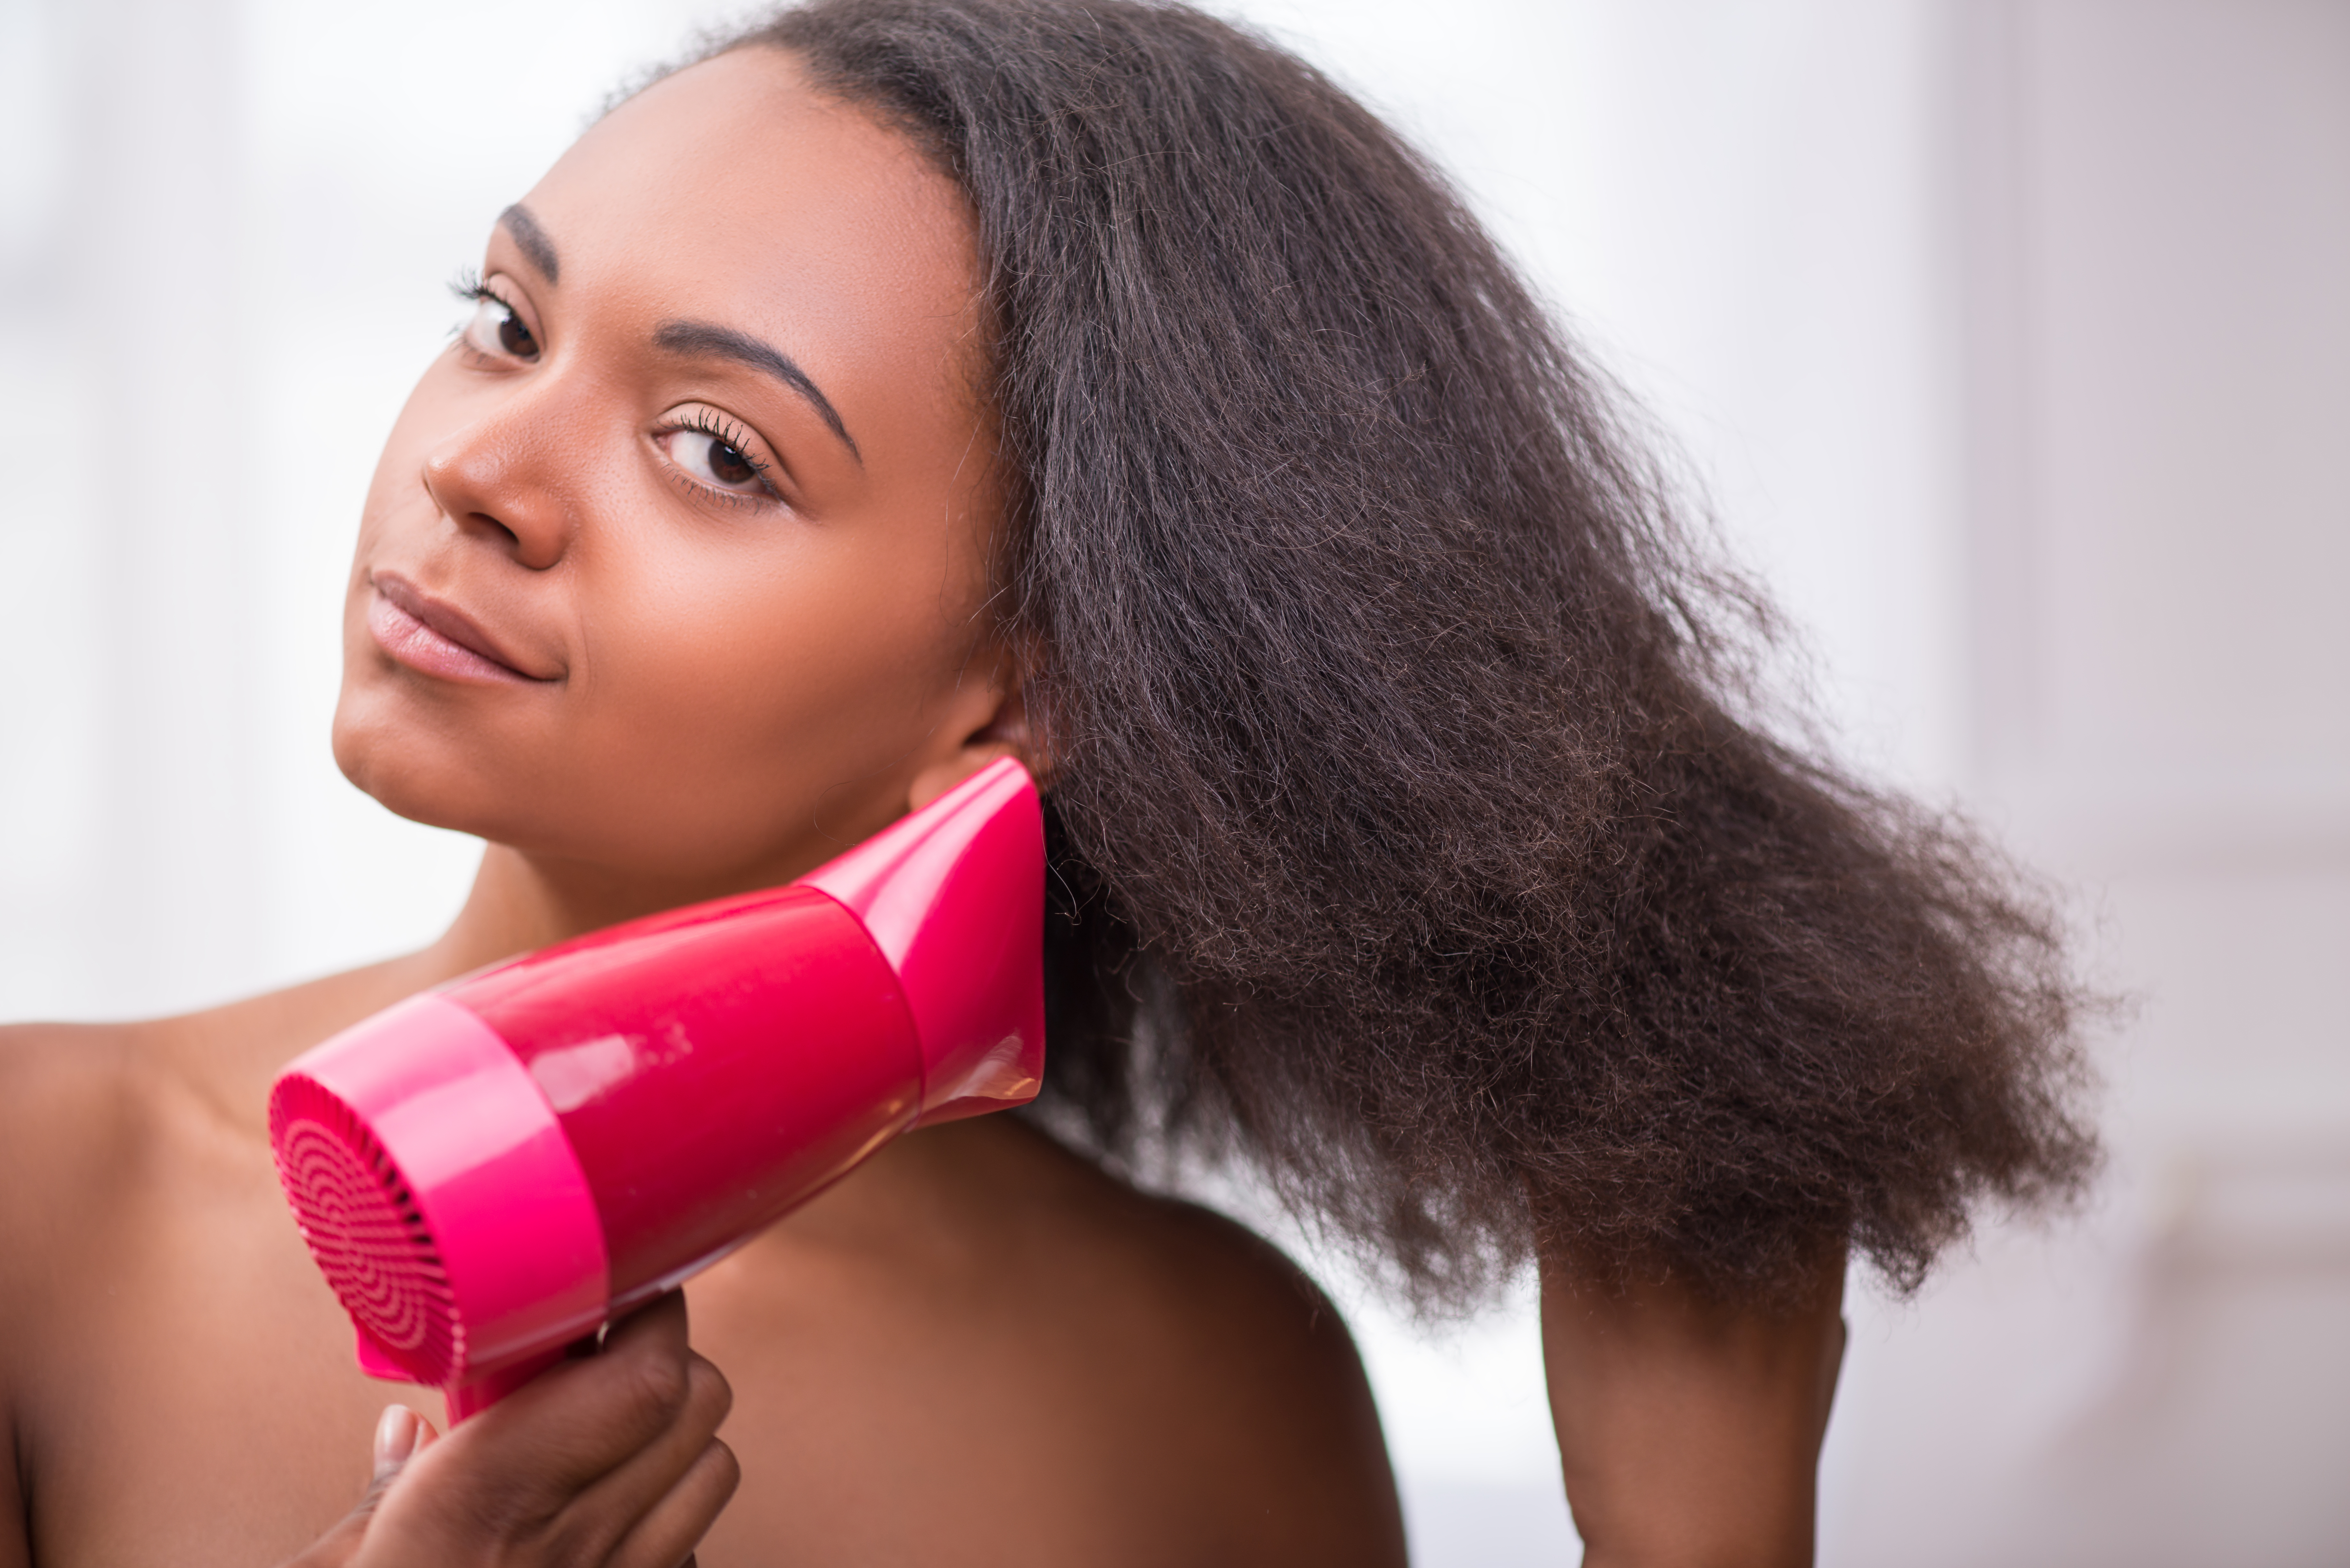 A person brushing her hair after applying hair moisturizer